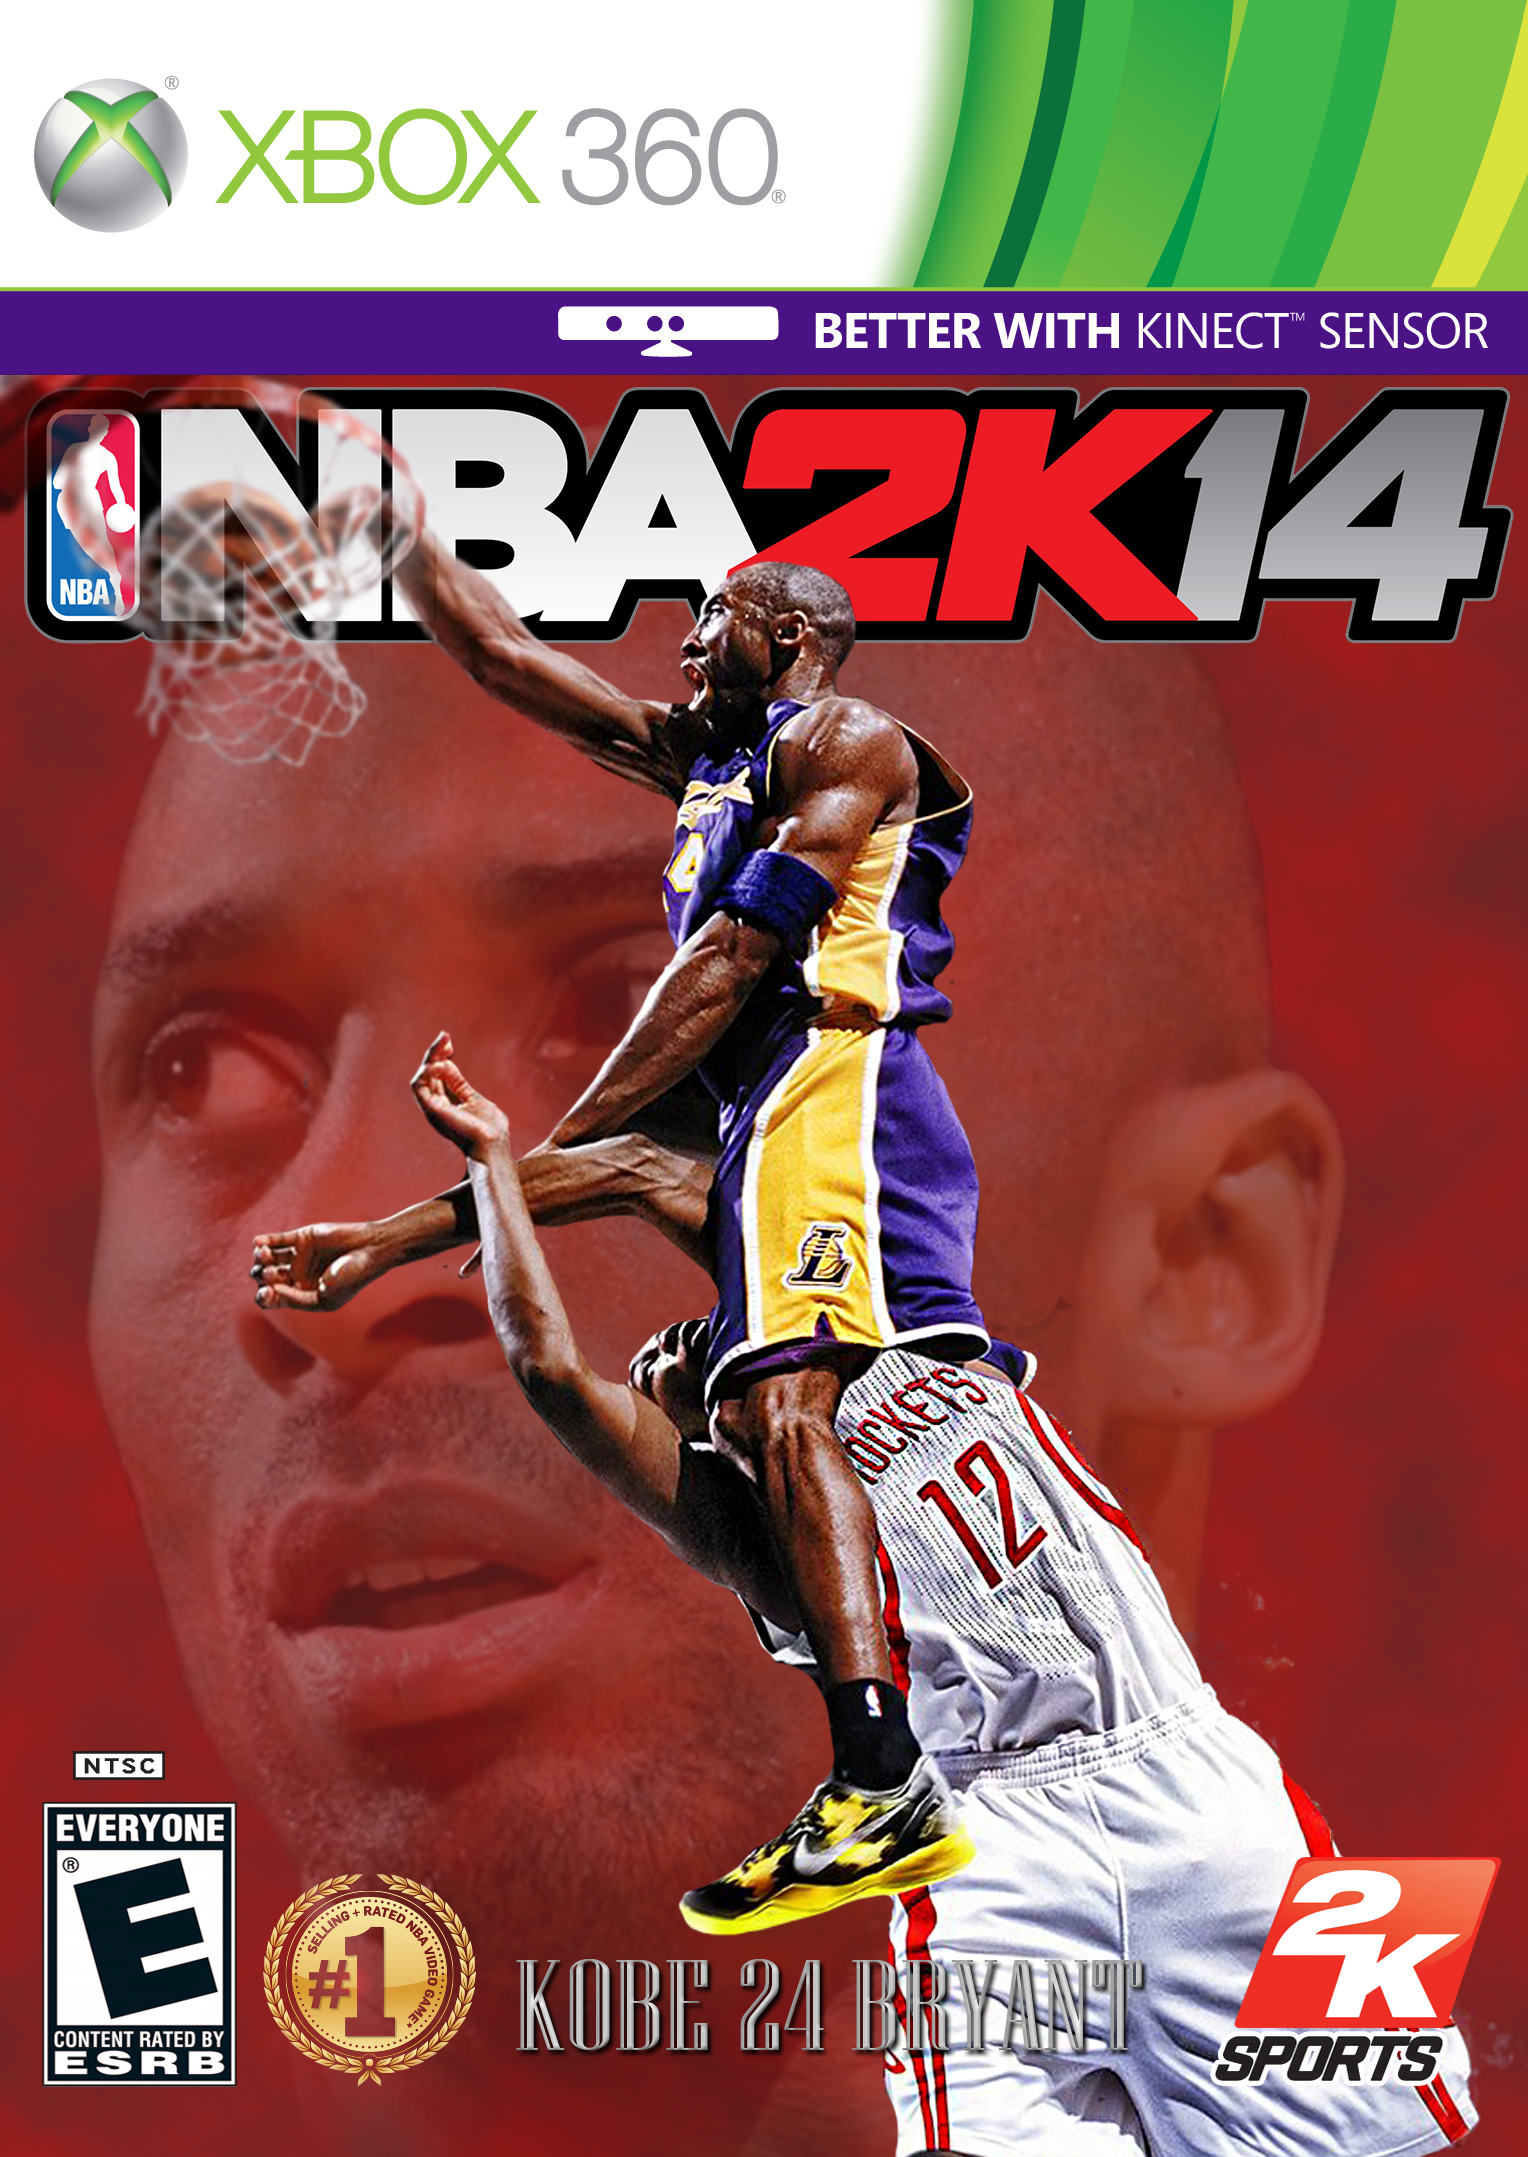 Nba 2k14 Covers Page 20 Operation Sports Forums Video Game Tester Sports Video Game Video Game Tester Jobs